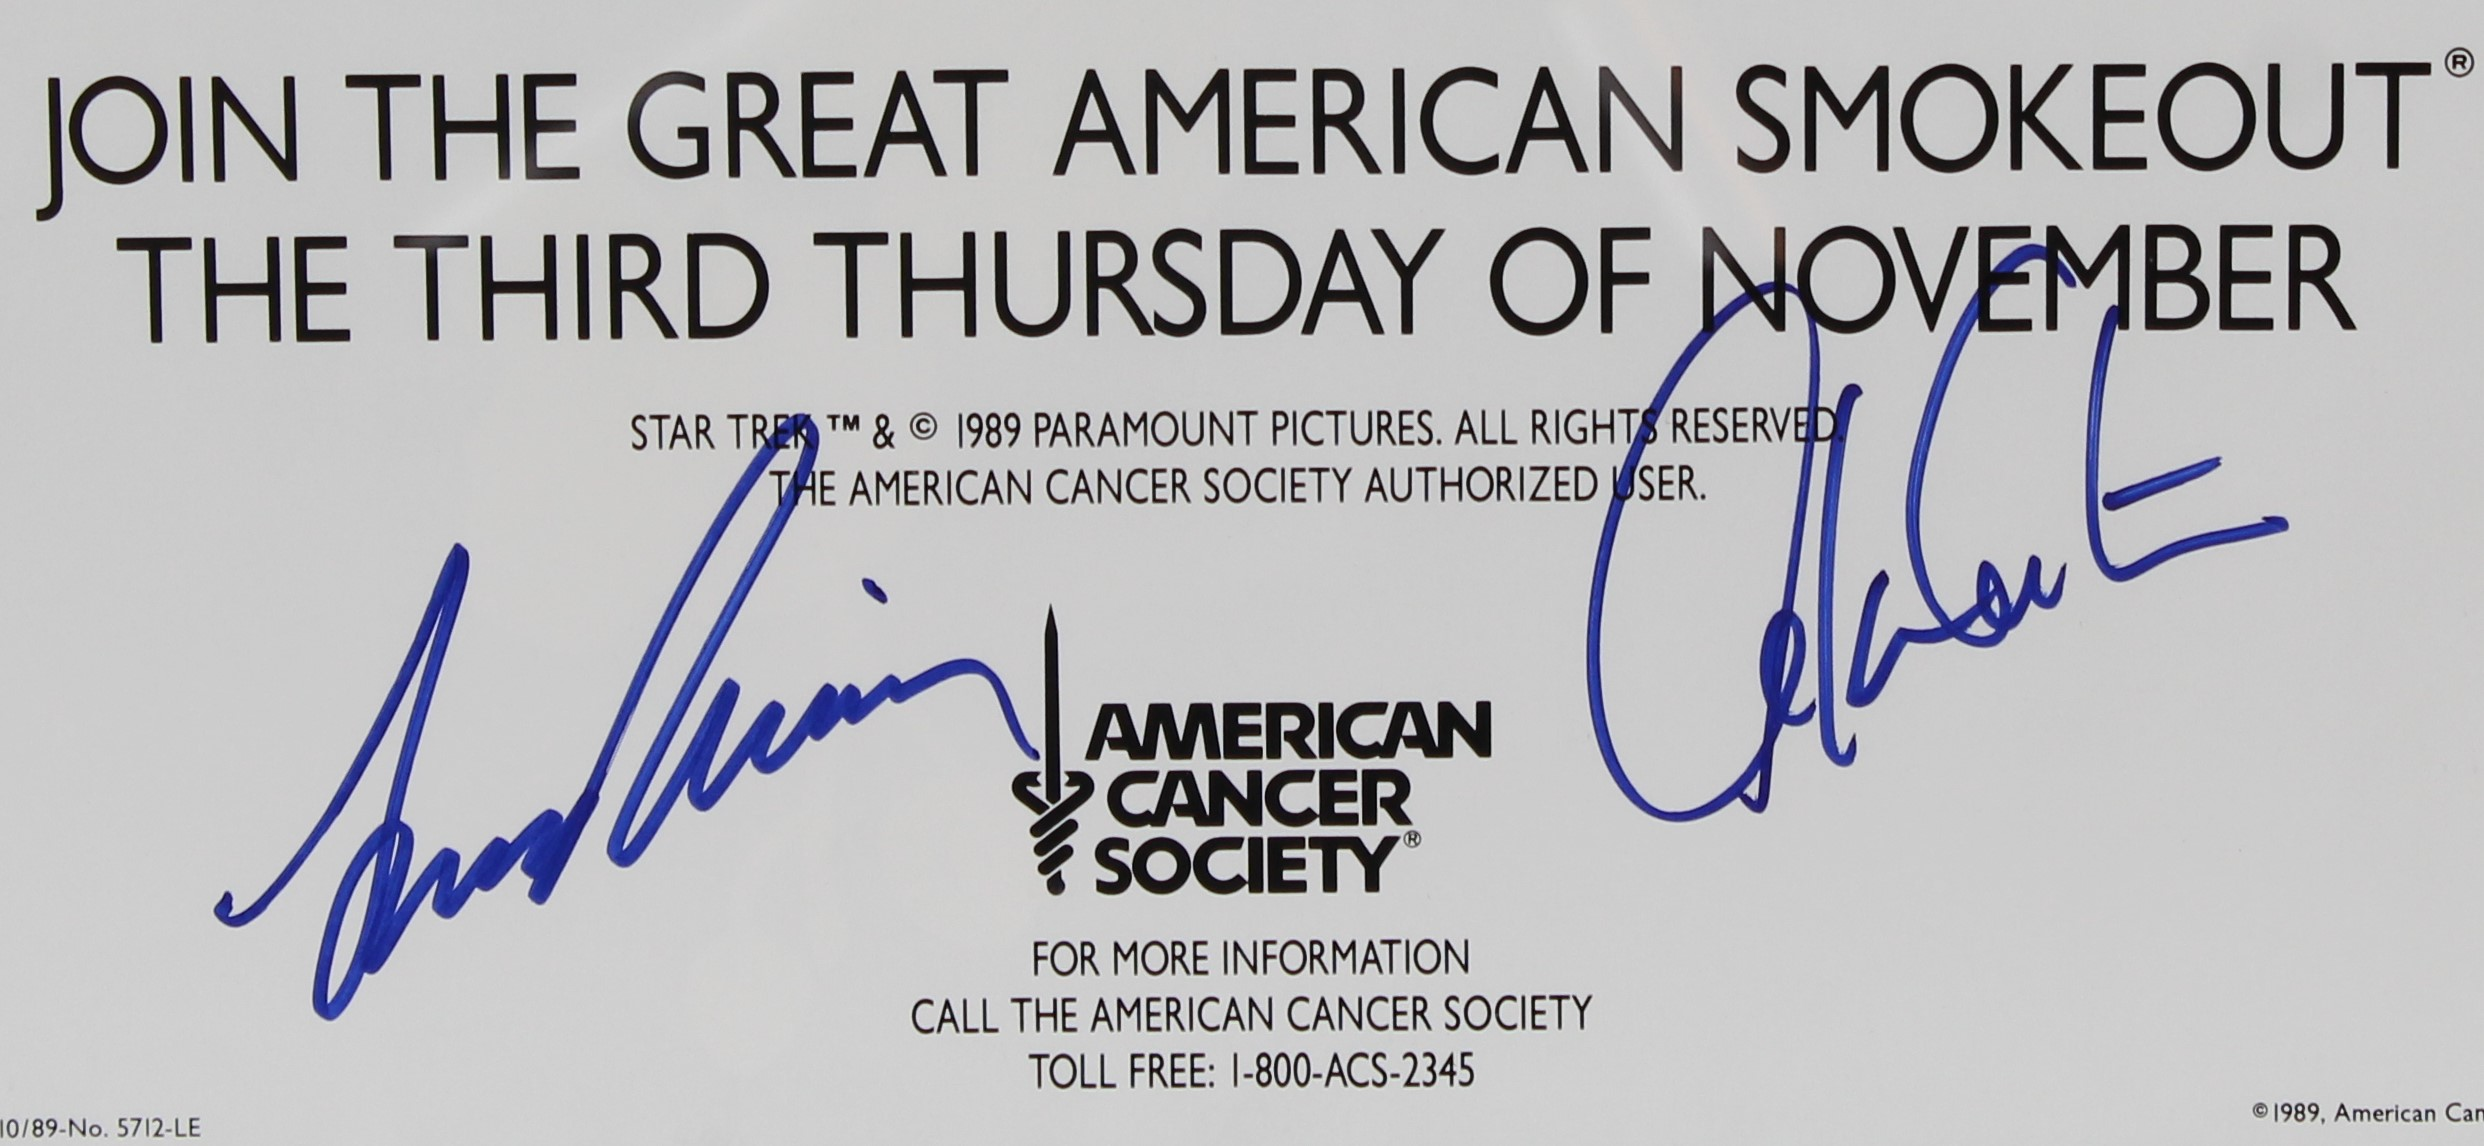 A close-up of the Leonard Nimoy and William Shatner autographs on the poster.